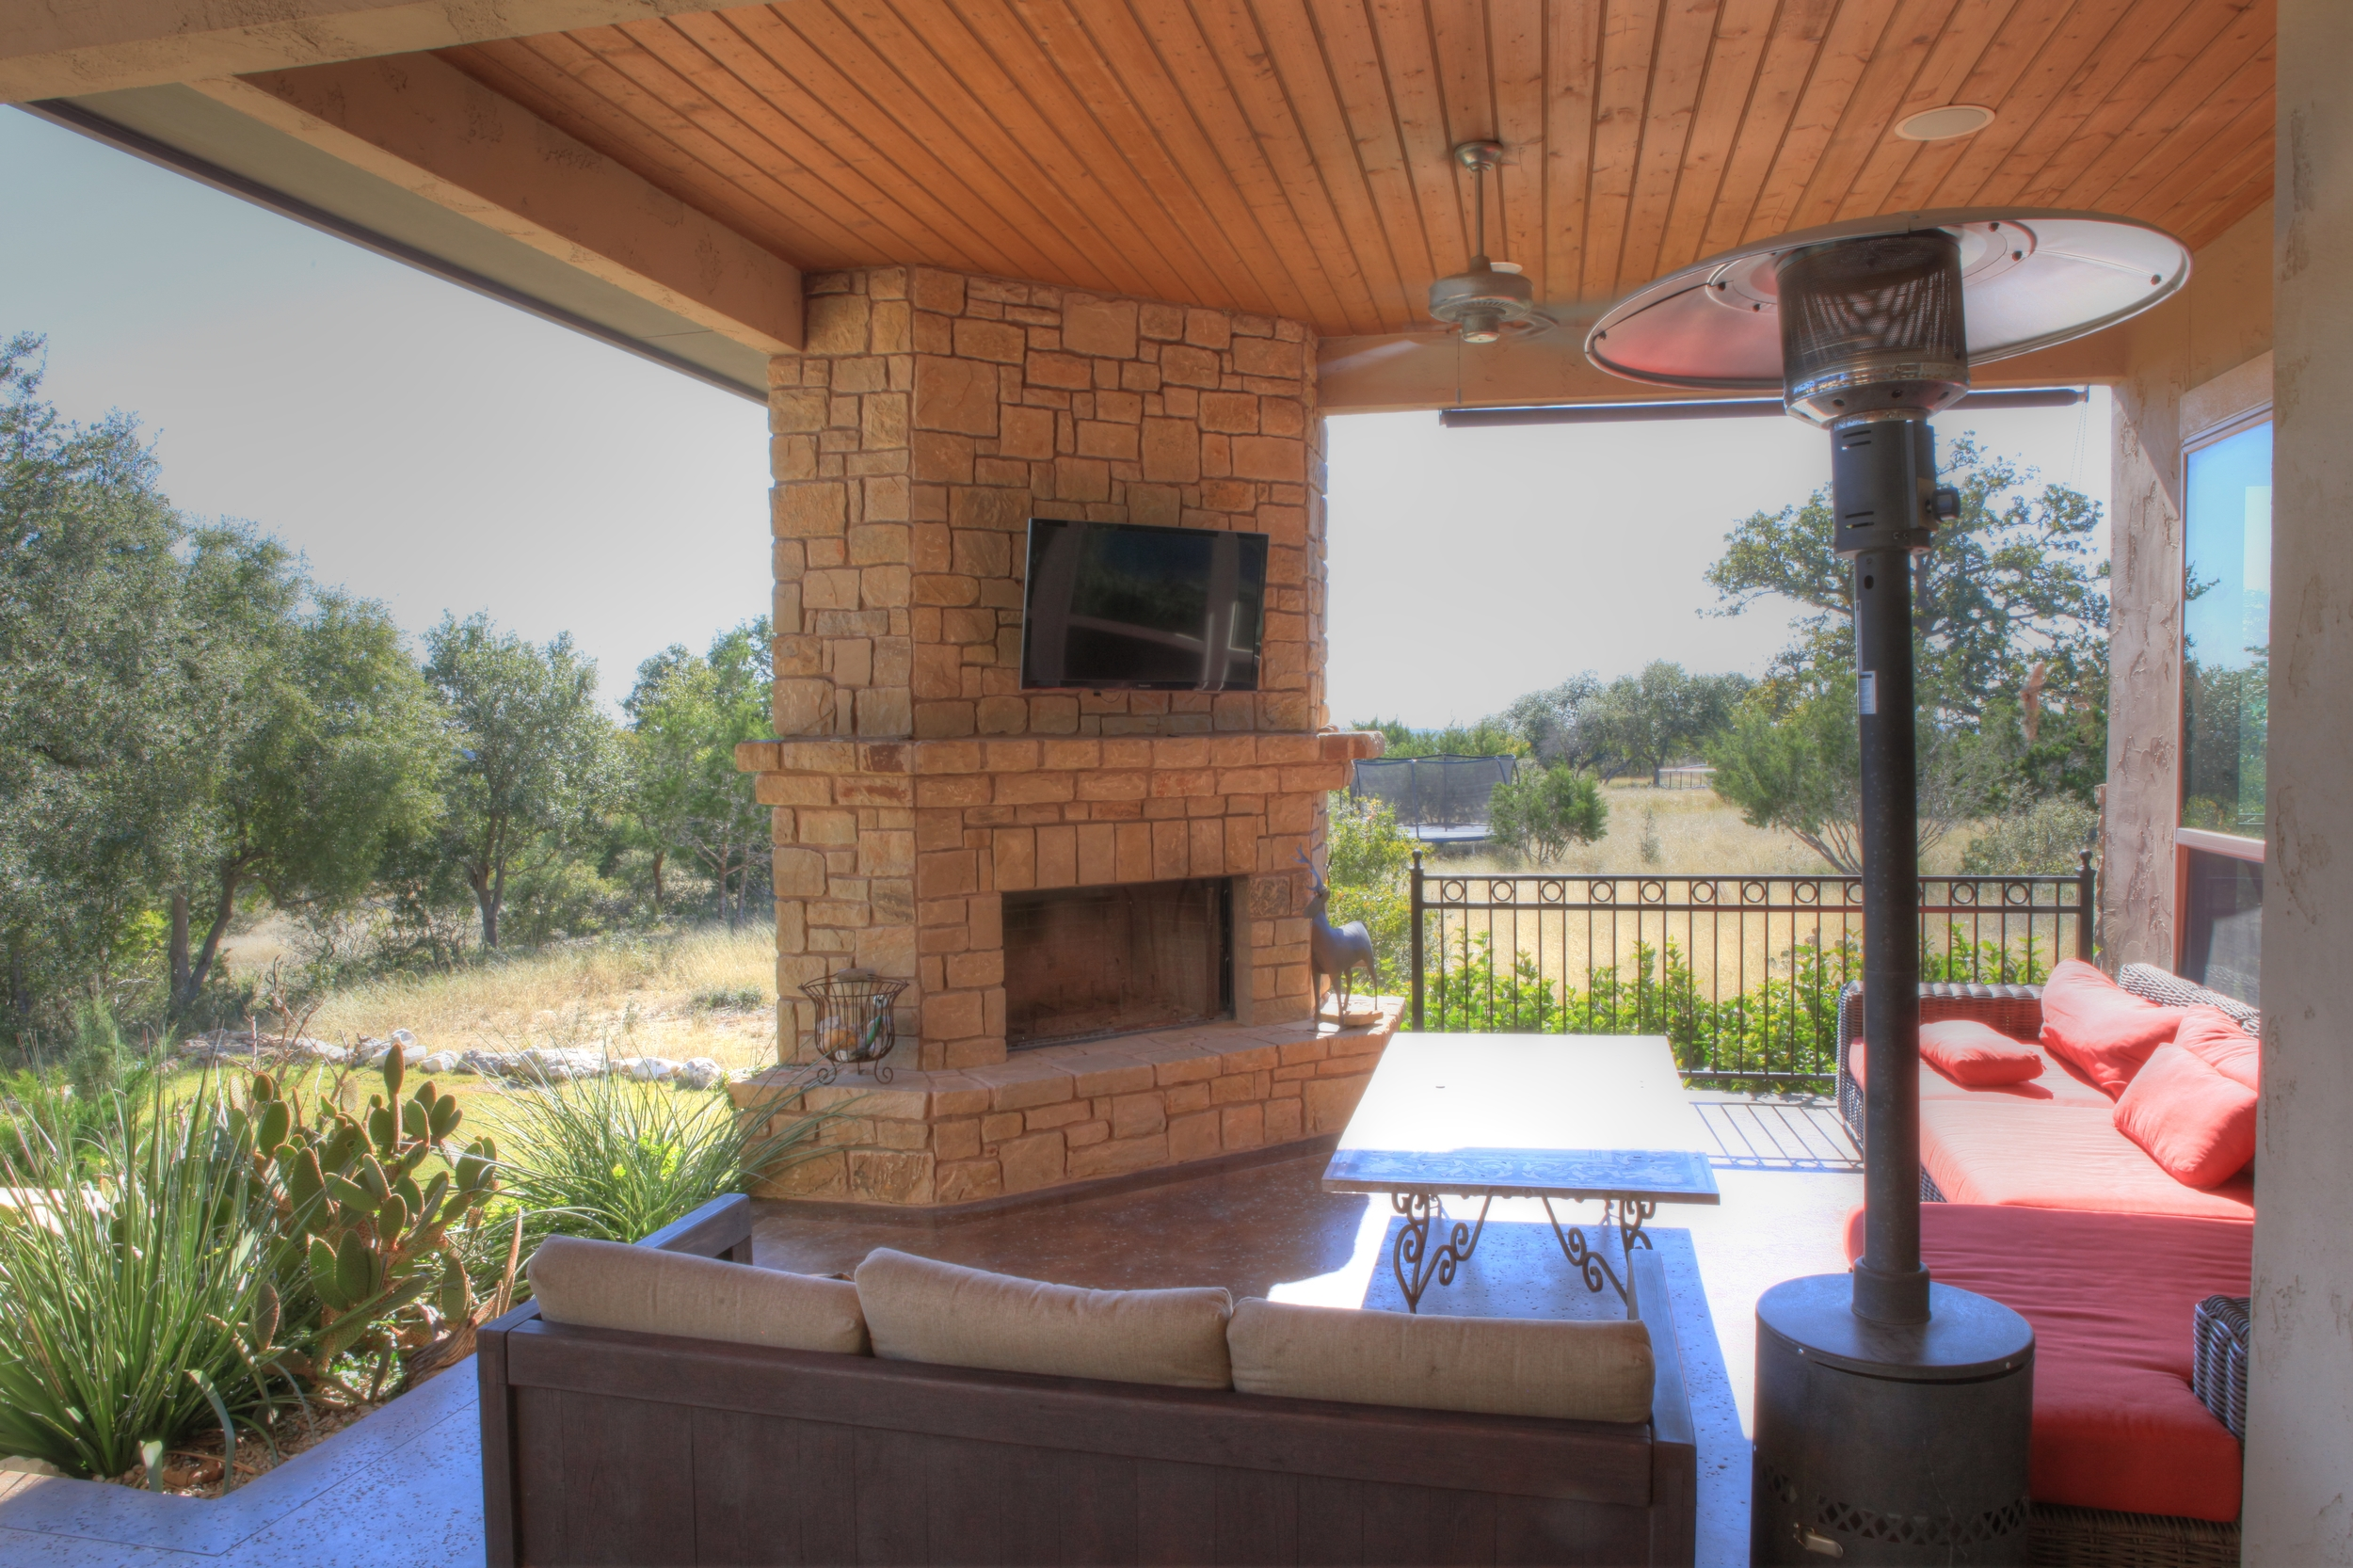 exterior - patio fireplace.jpg